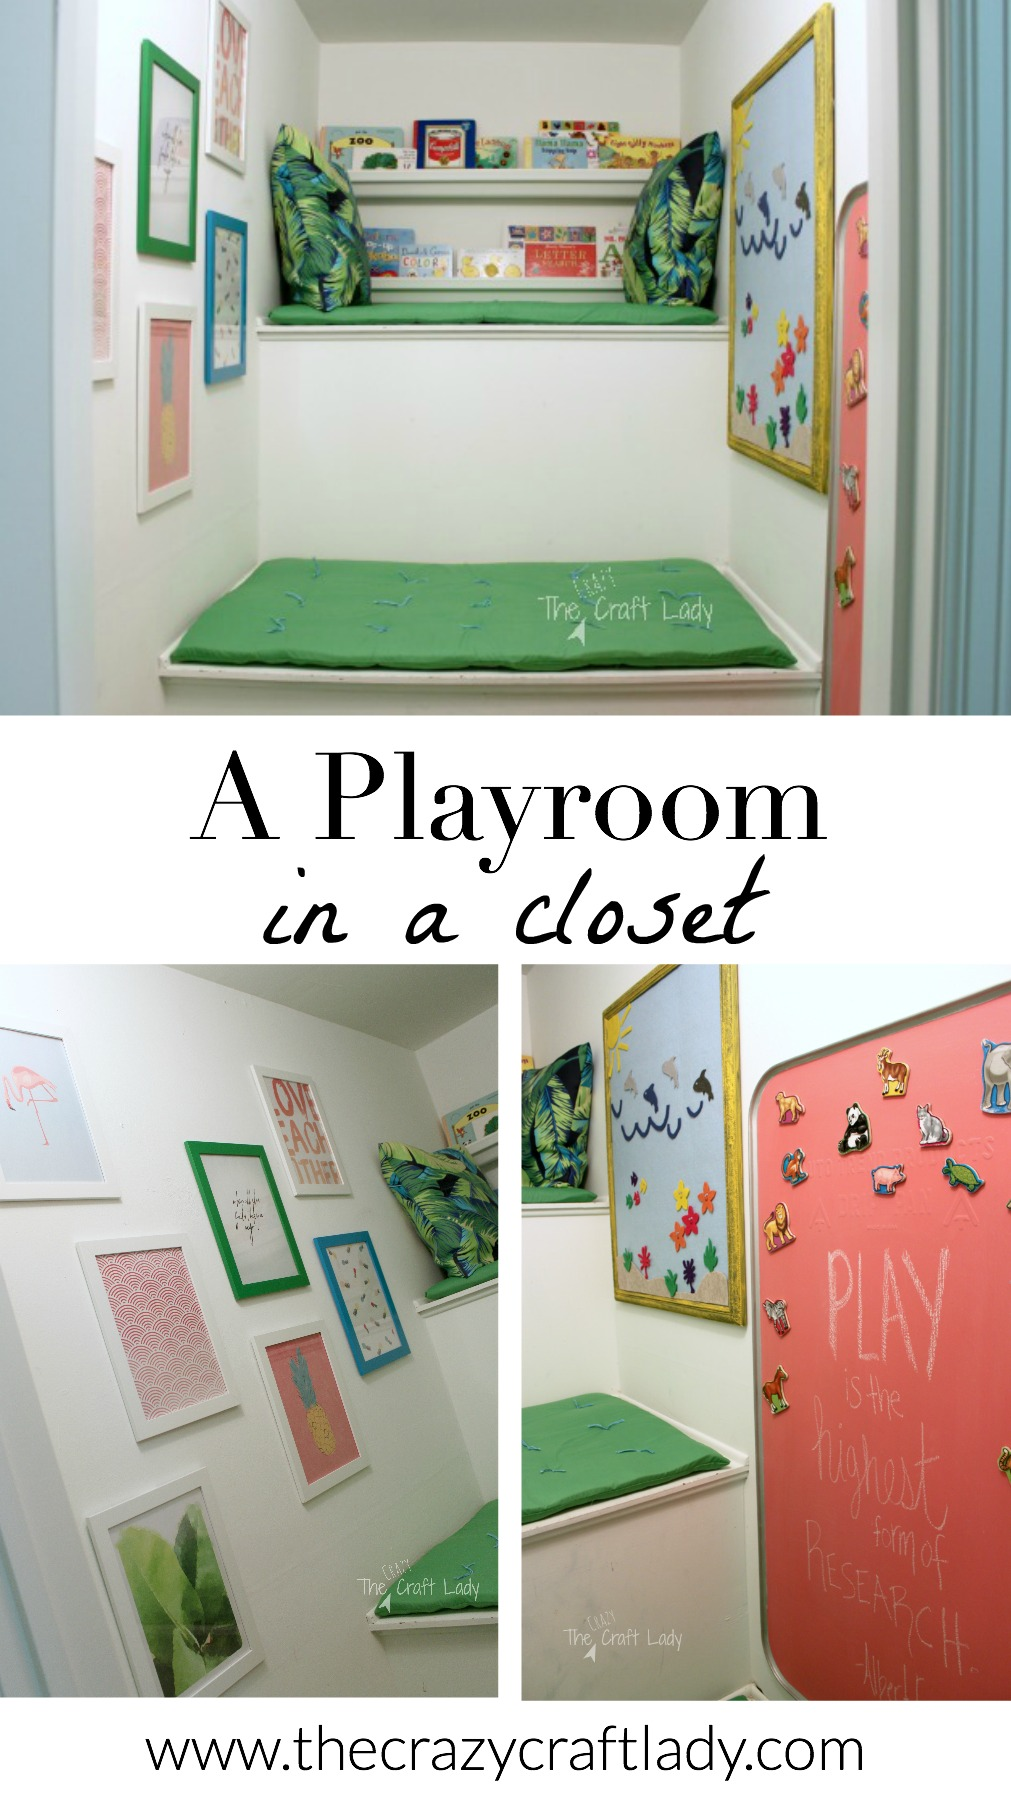 A Playroom in a Closet